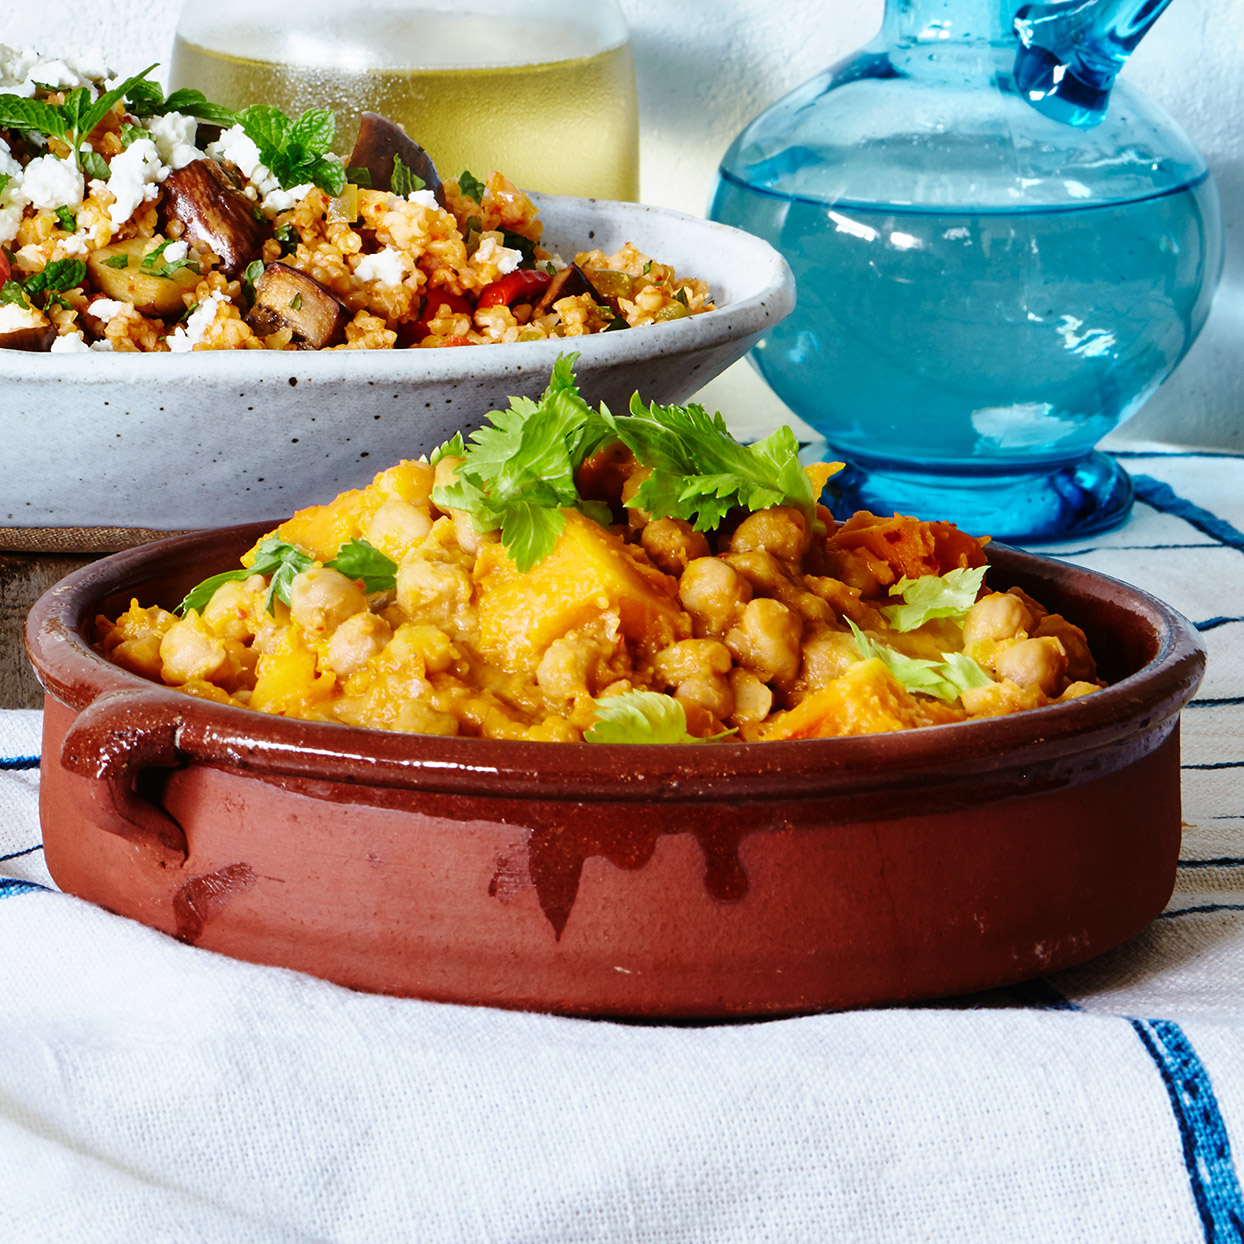 On Crete, chickpeas are commonly flavored with Seville orange, a pleasingly bitter variety grown locally. Orange zest along with lemon juice makes a good substitute. A little mustard deepens the flavor. Source: EatingWell Magazine, March 2020